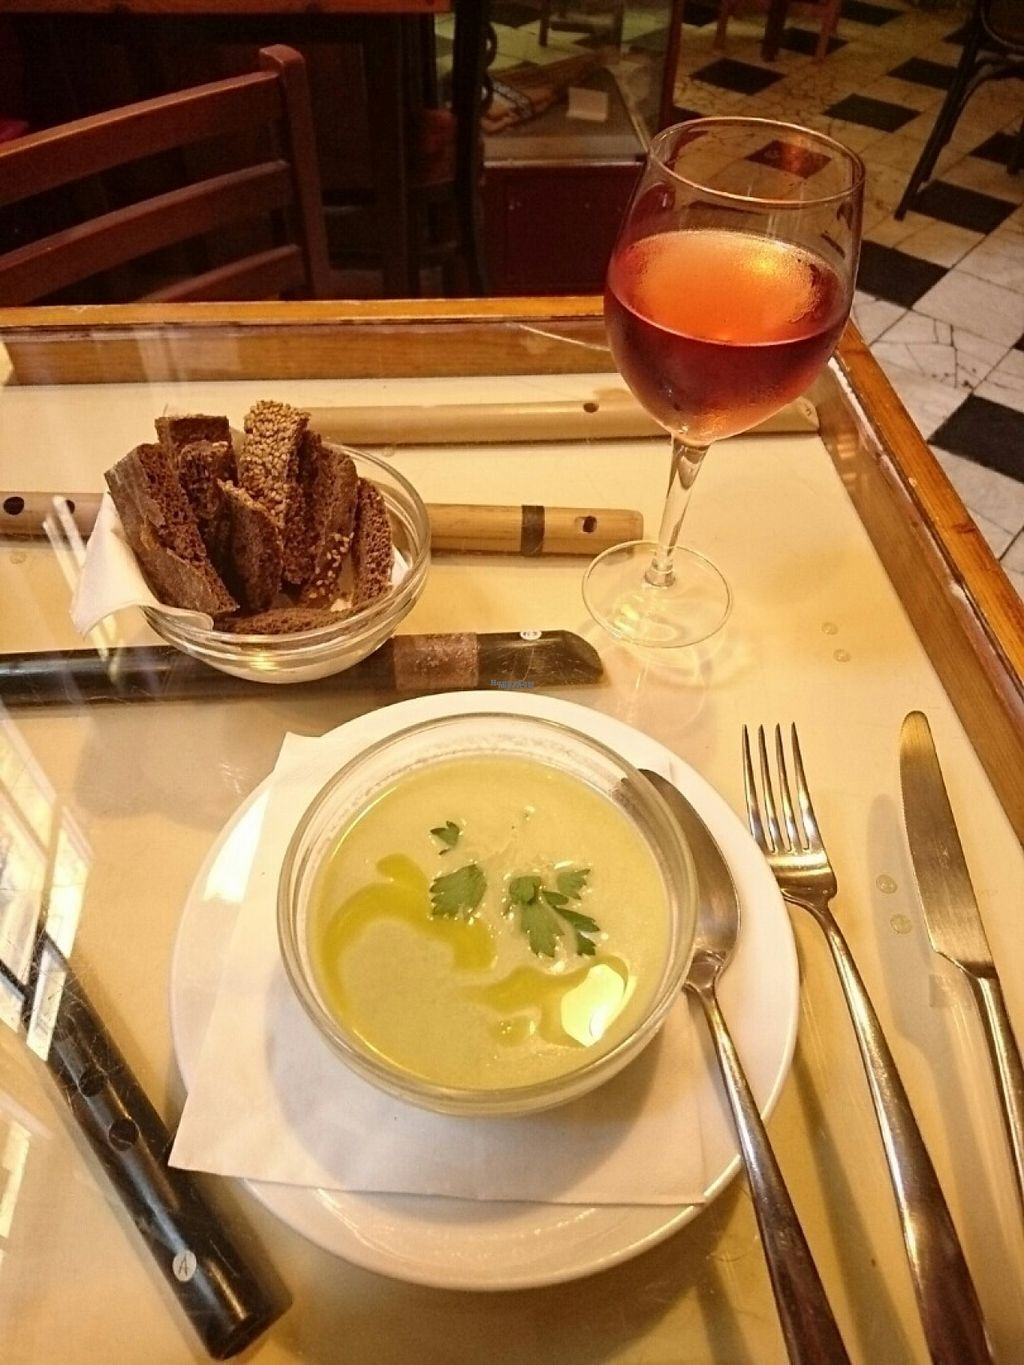 "Photo of La Cereria  by <a href=""/members/profile/cyberlp23"">cyberlp23</a> <br/>Soup, rosé wine & brown bread <br/> August 17, 2016  - <a href='/contact/abuse/image/34026/169409'>Report</a>"